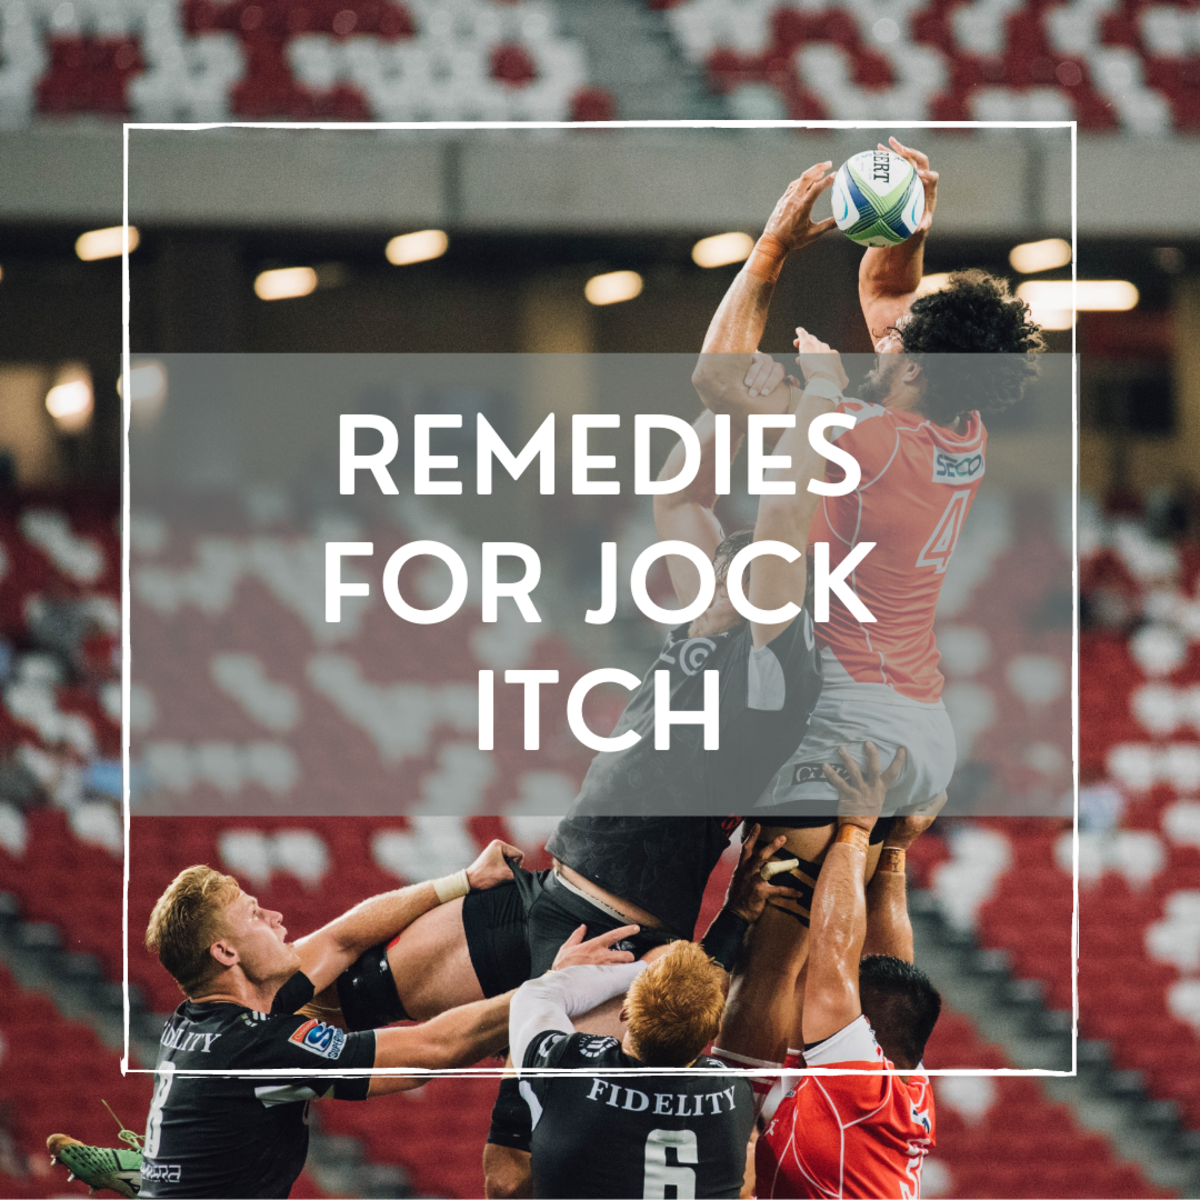 Remedies for Jock Itch